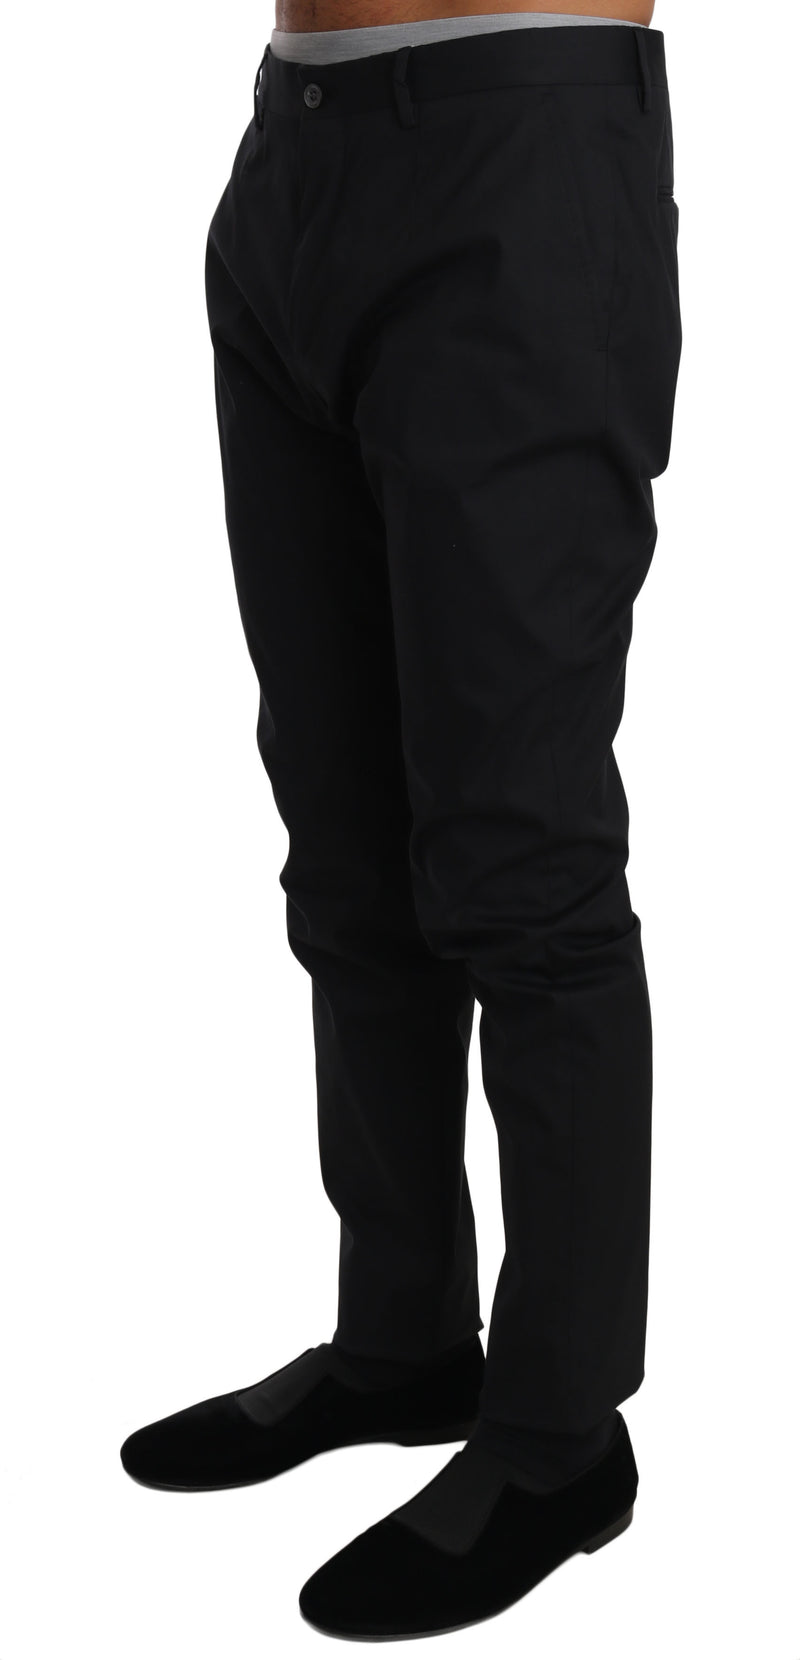 Black Cotton Stretch Formal Trousers Pants